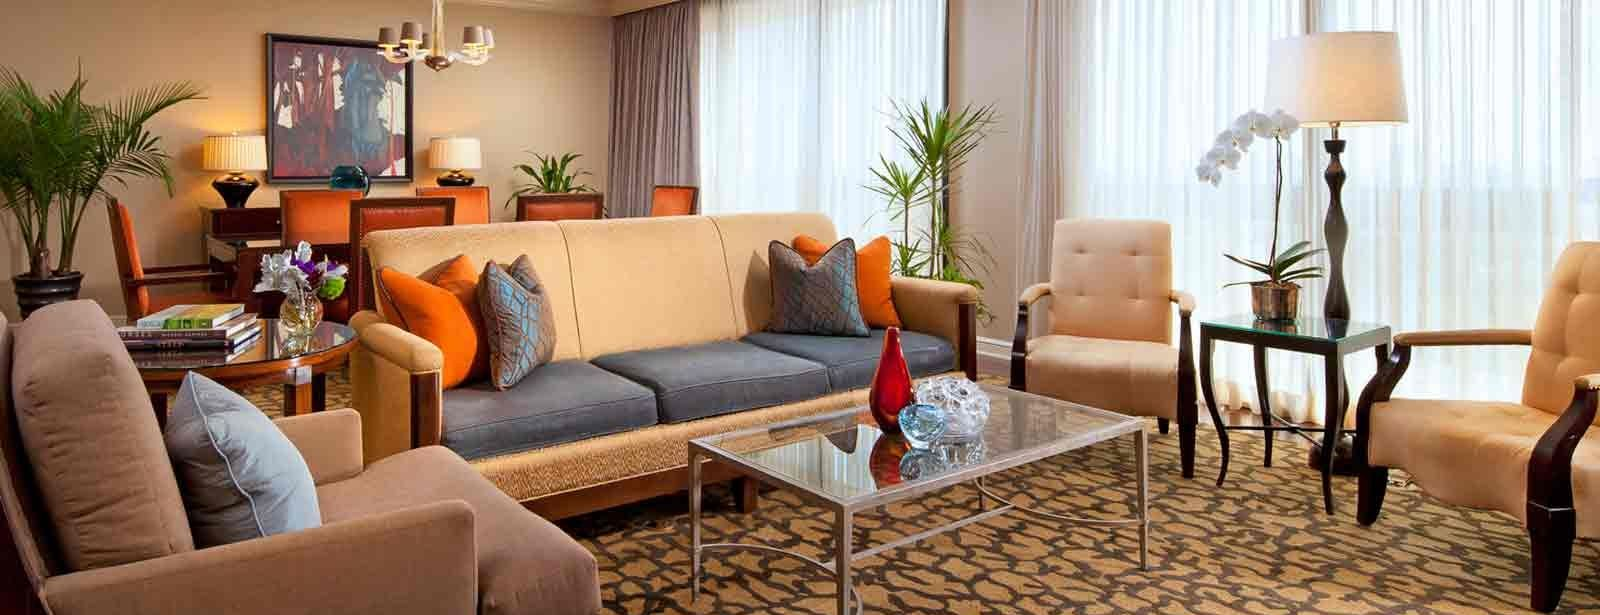 Governor or State Suite - Luxury Hotels in Houston| The St. Regis Houston Hotel